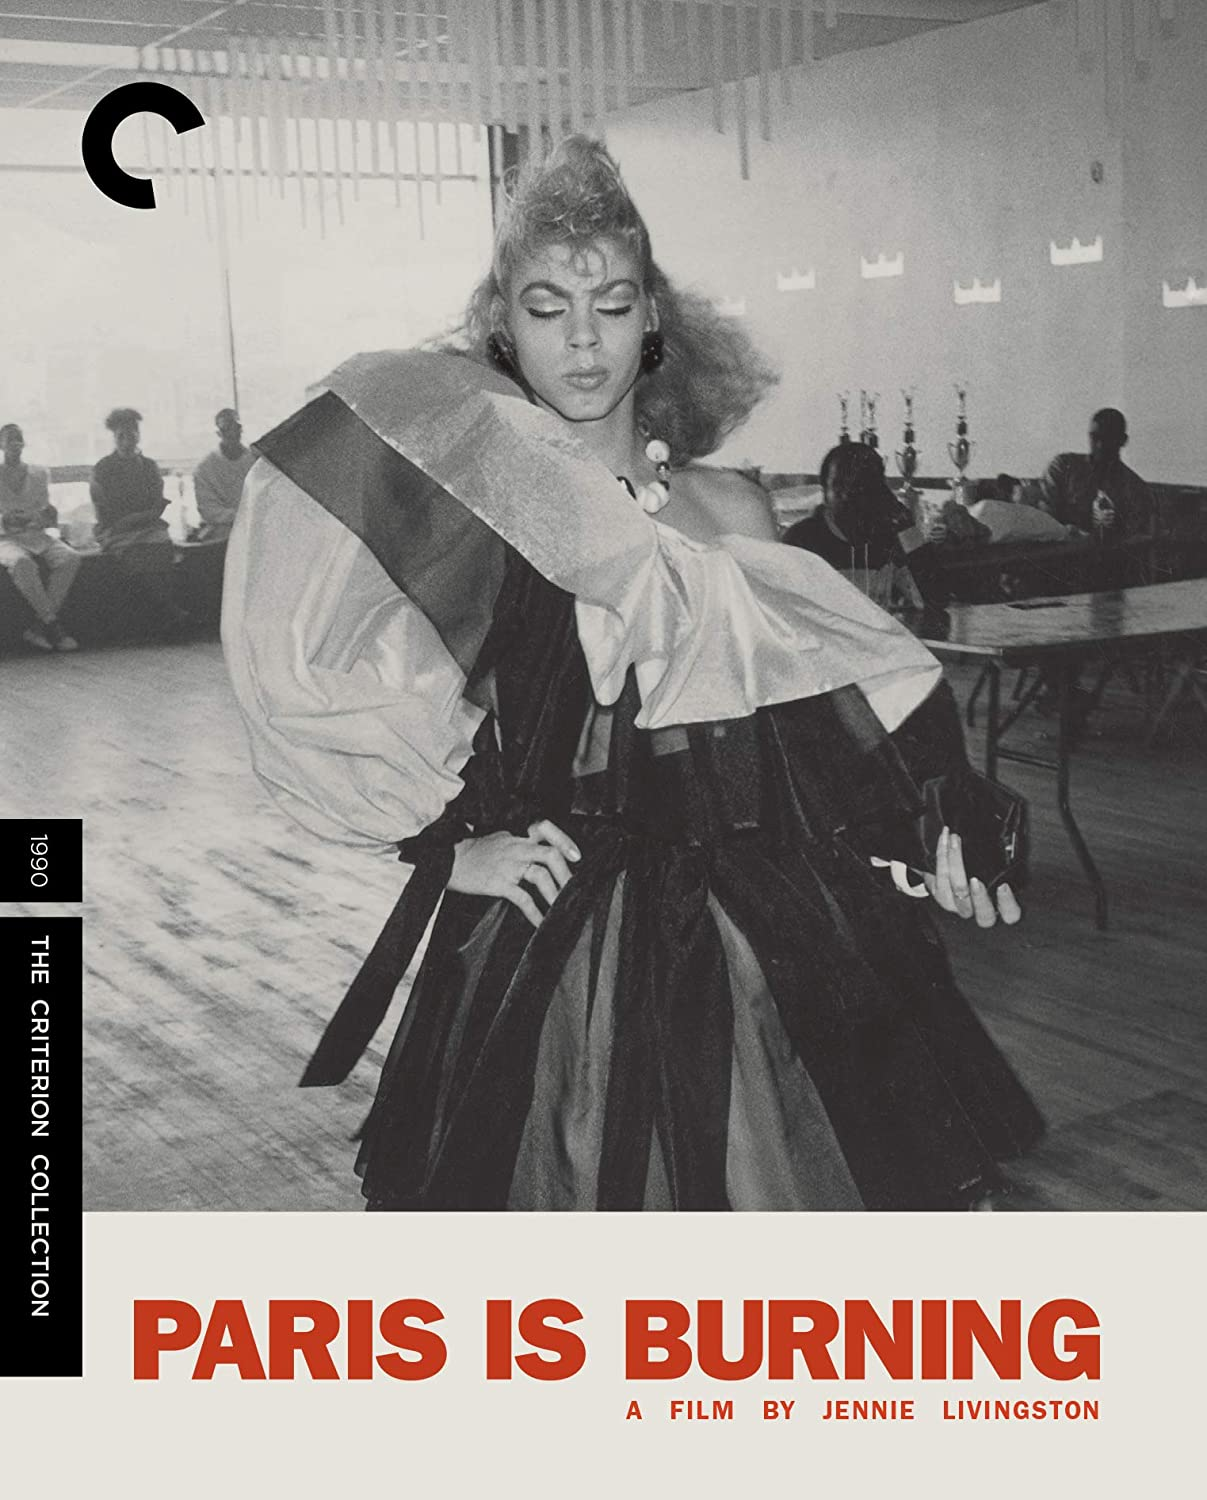 Amazon.com: Paris is Burning (The Criterion Collection) [Blu ...